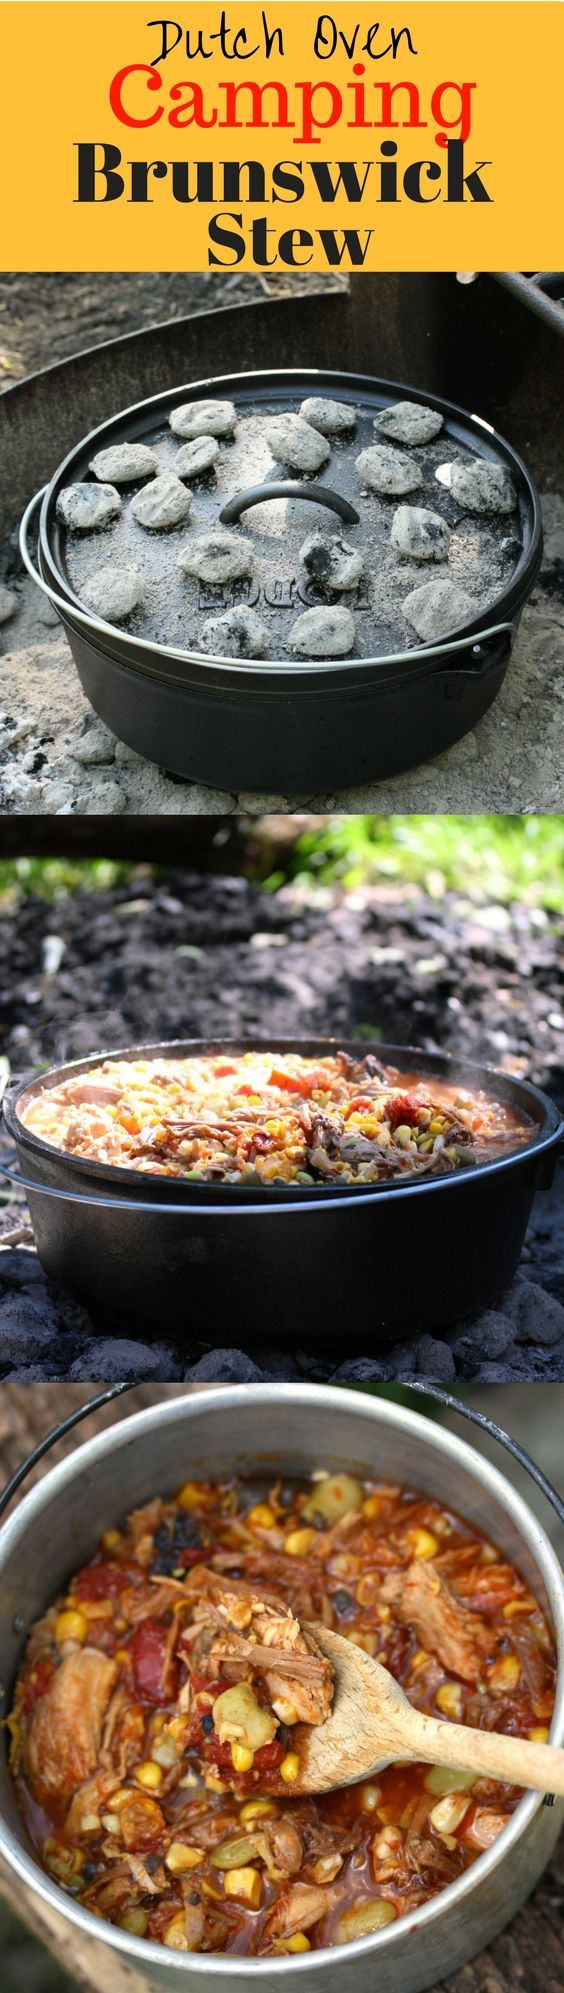 Brunswick Stew - a delicious tomato based stew containing lima beans, okra, corn and other vegetables, plus various types of smoked meats.  Perfect cooked over hot coals in a Lodge Dutch Oven after a fun day hiking and enjoying the great outdoors!  www.savingdessert.com